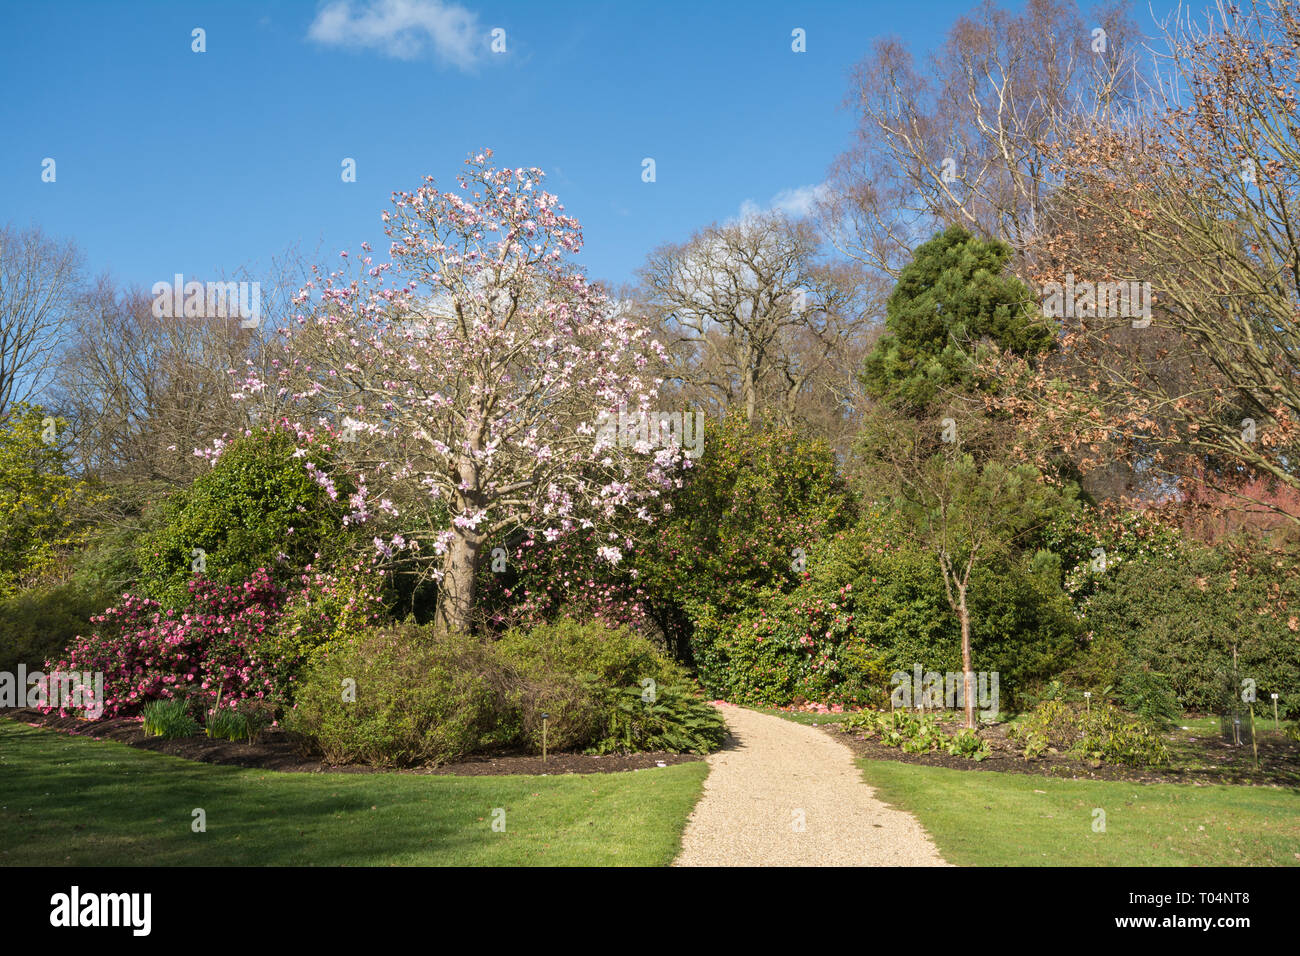 the-spring-garden-at-savill-garden-in-windsor-great-park-during-march-with-flowers-and-magnolias-in-bloom-uk-T04NT8.jpg